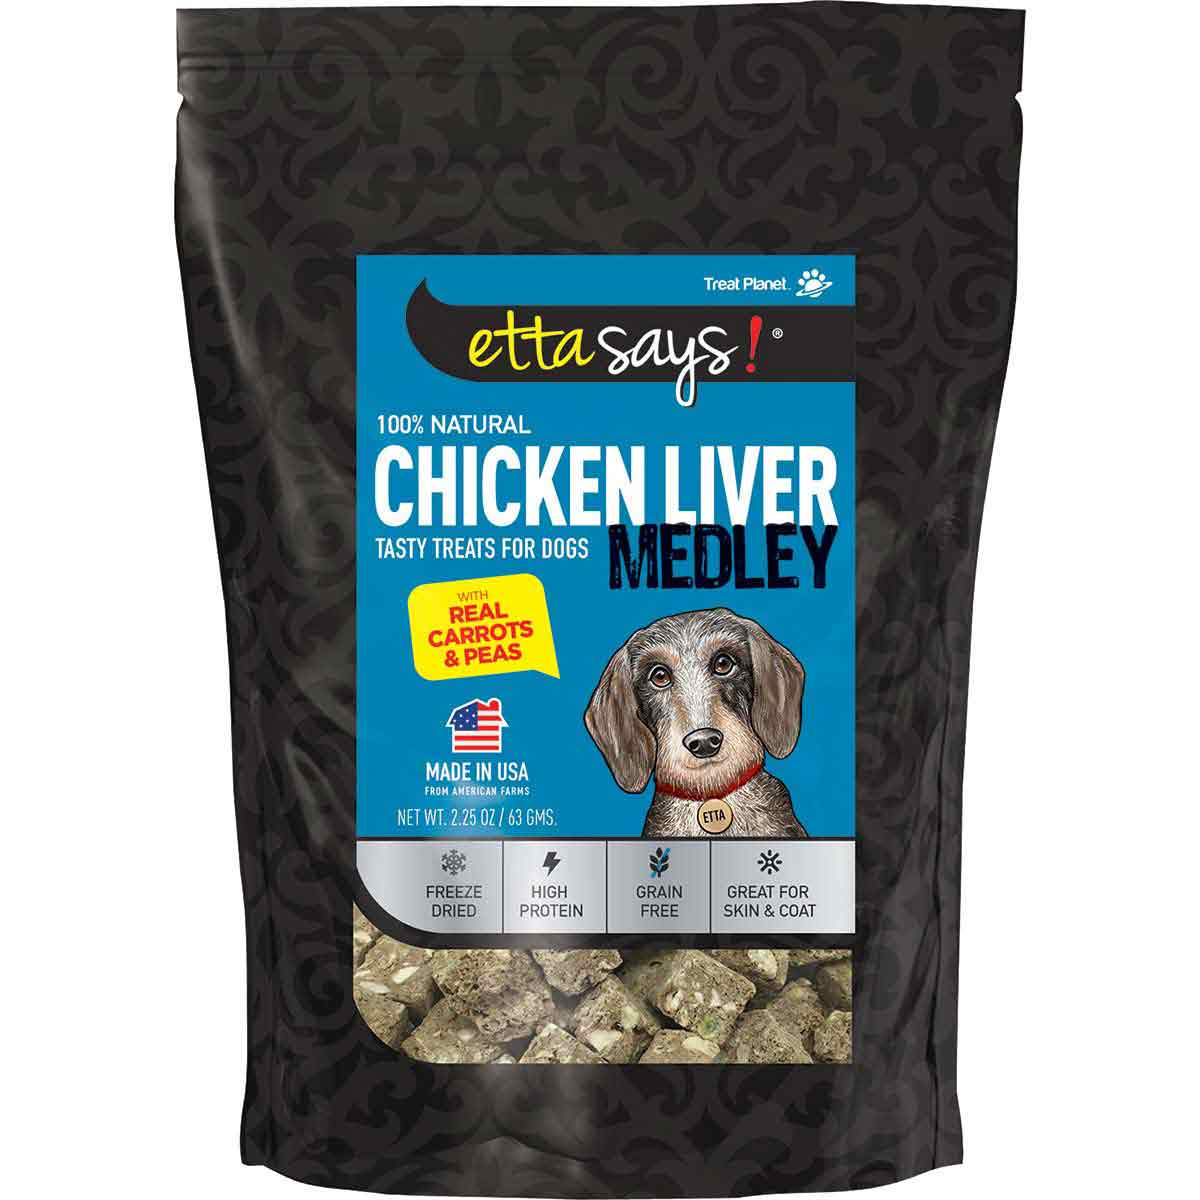 Etta Says! Freeze Dried Chicken Liver with Carrots & Peas 2.5 oz Treats for Dogs